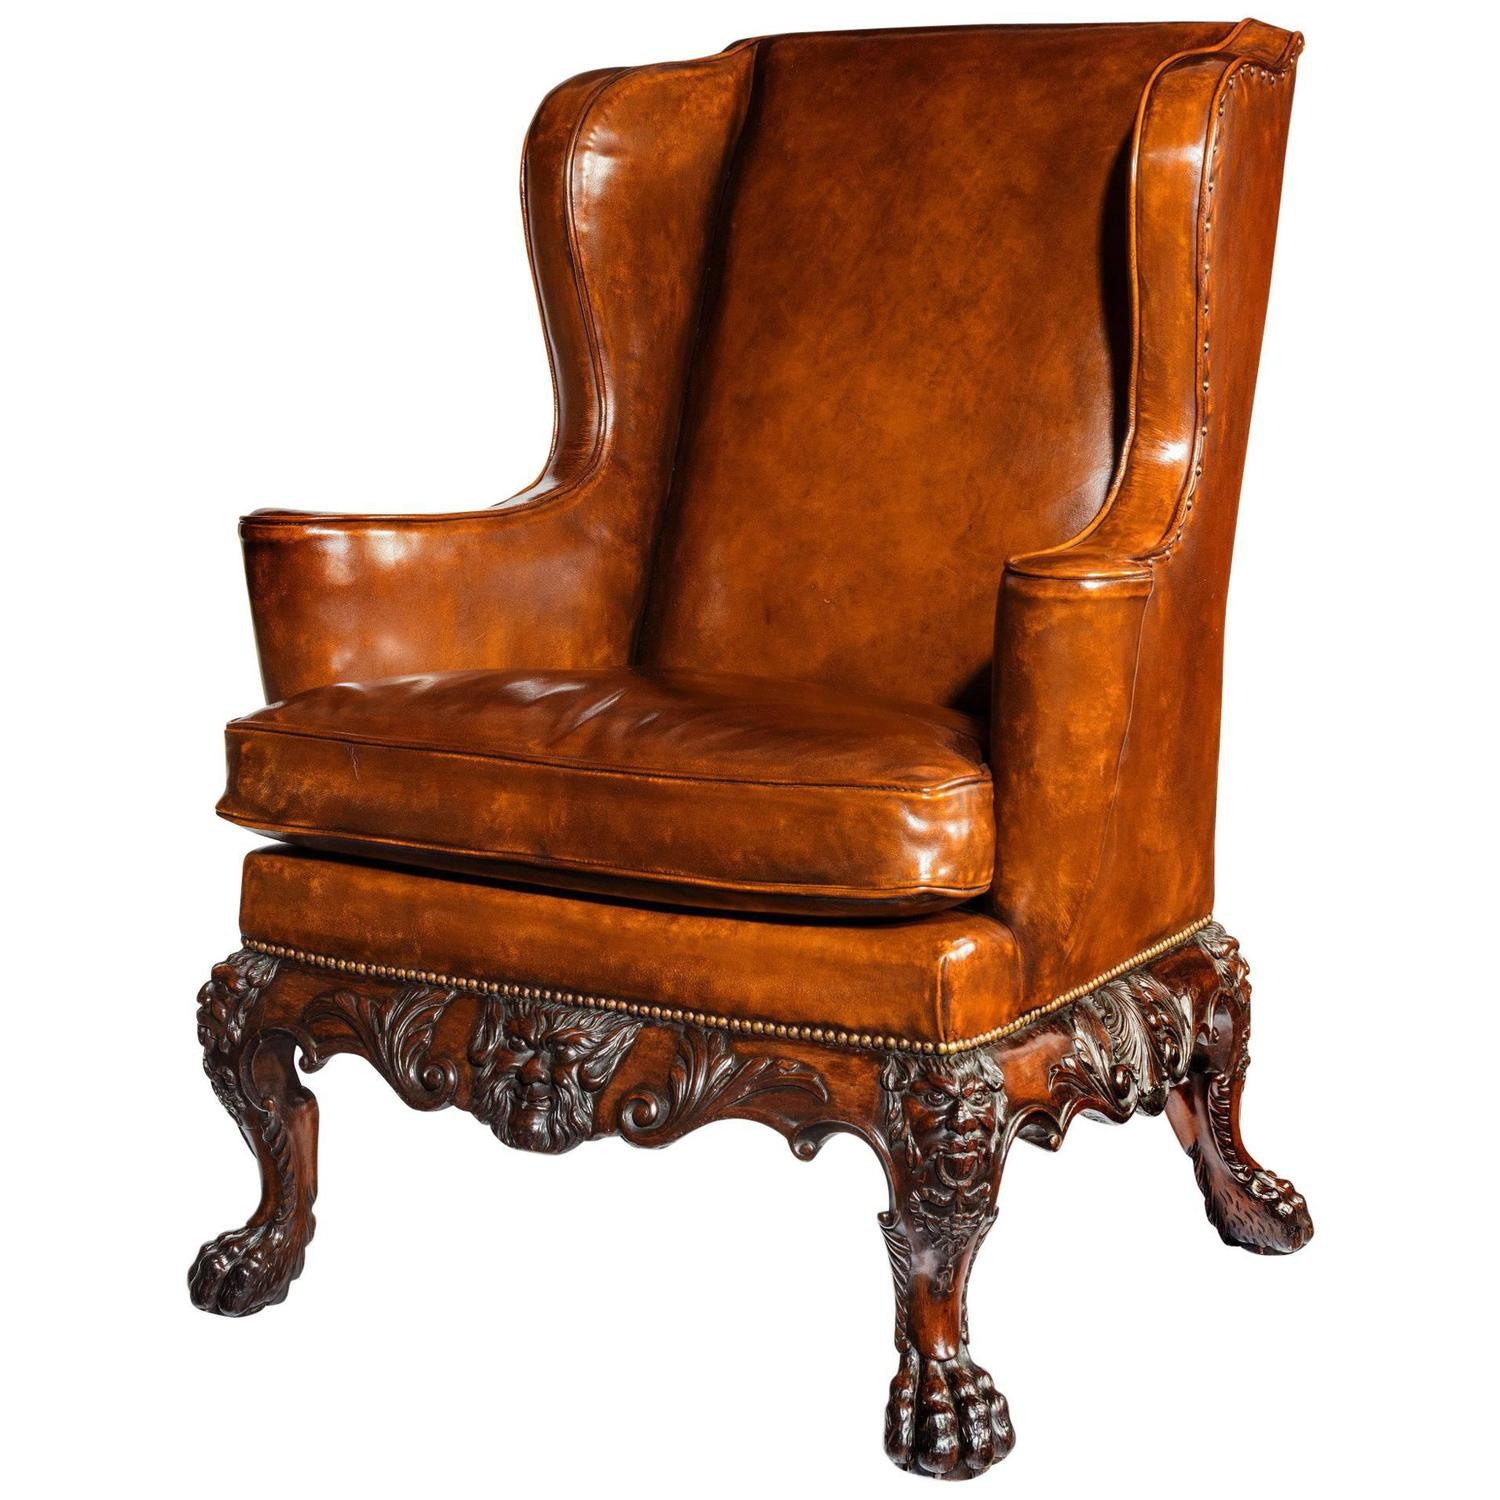 Leather Wingback Chairs 154 For Sale at 1stdibs